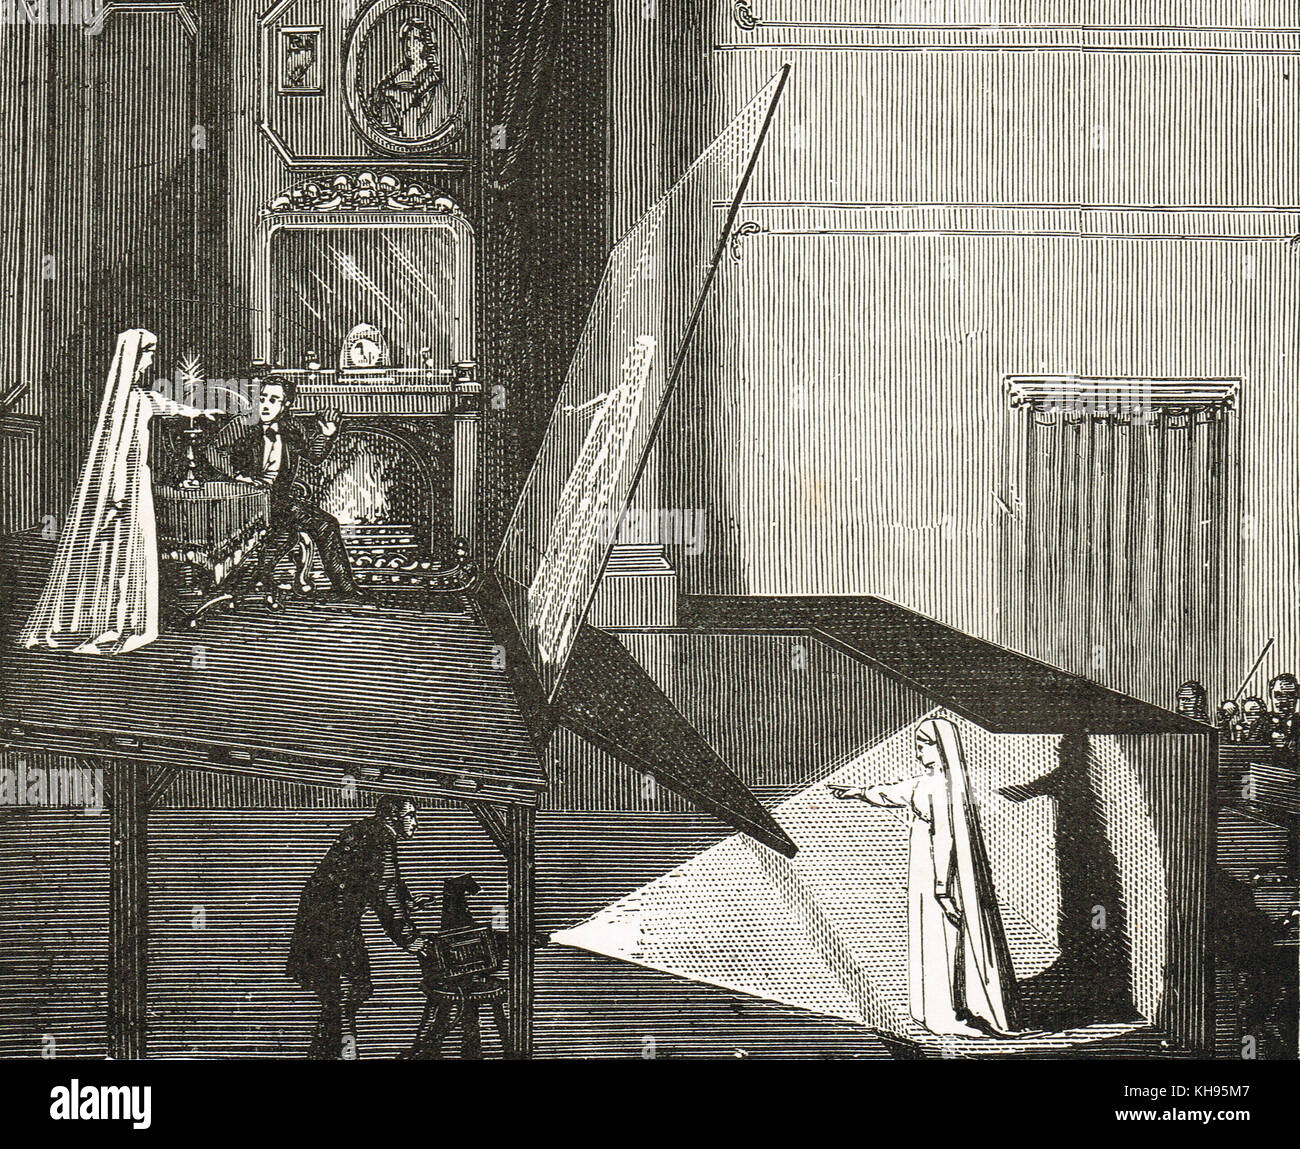 Pepper's ghost, an illusion technique used in the theatre to make a ghost appear on-stage - Stock Image